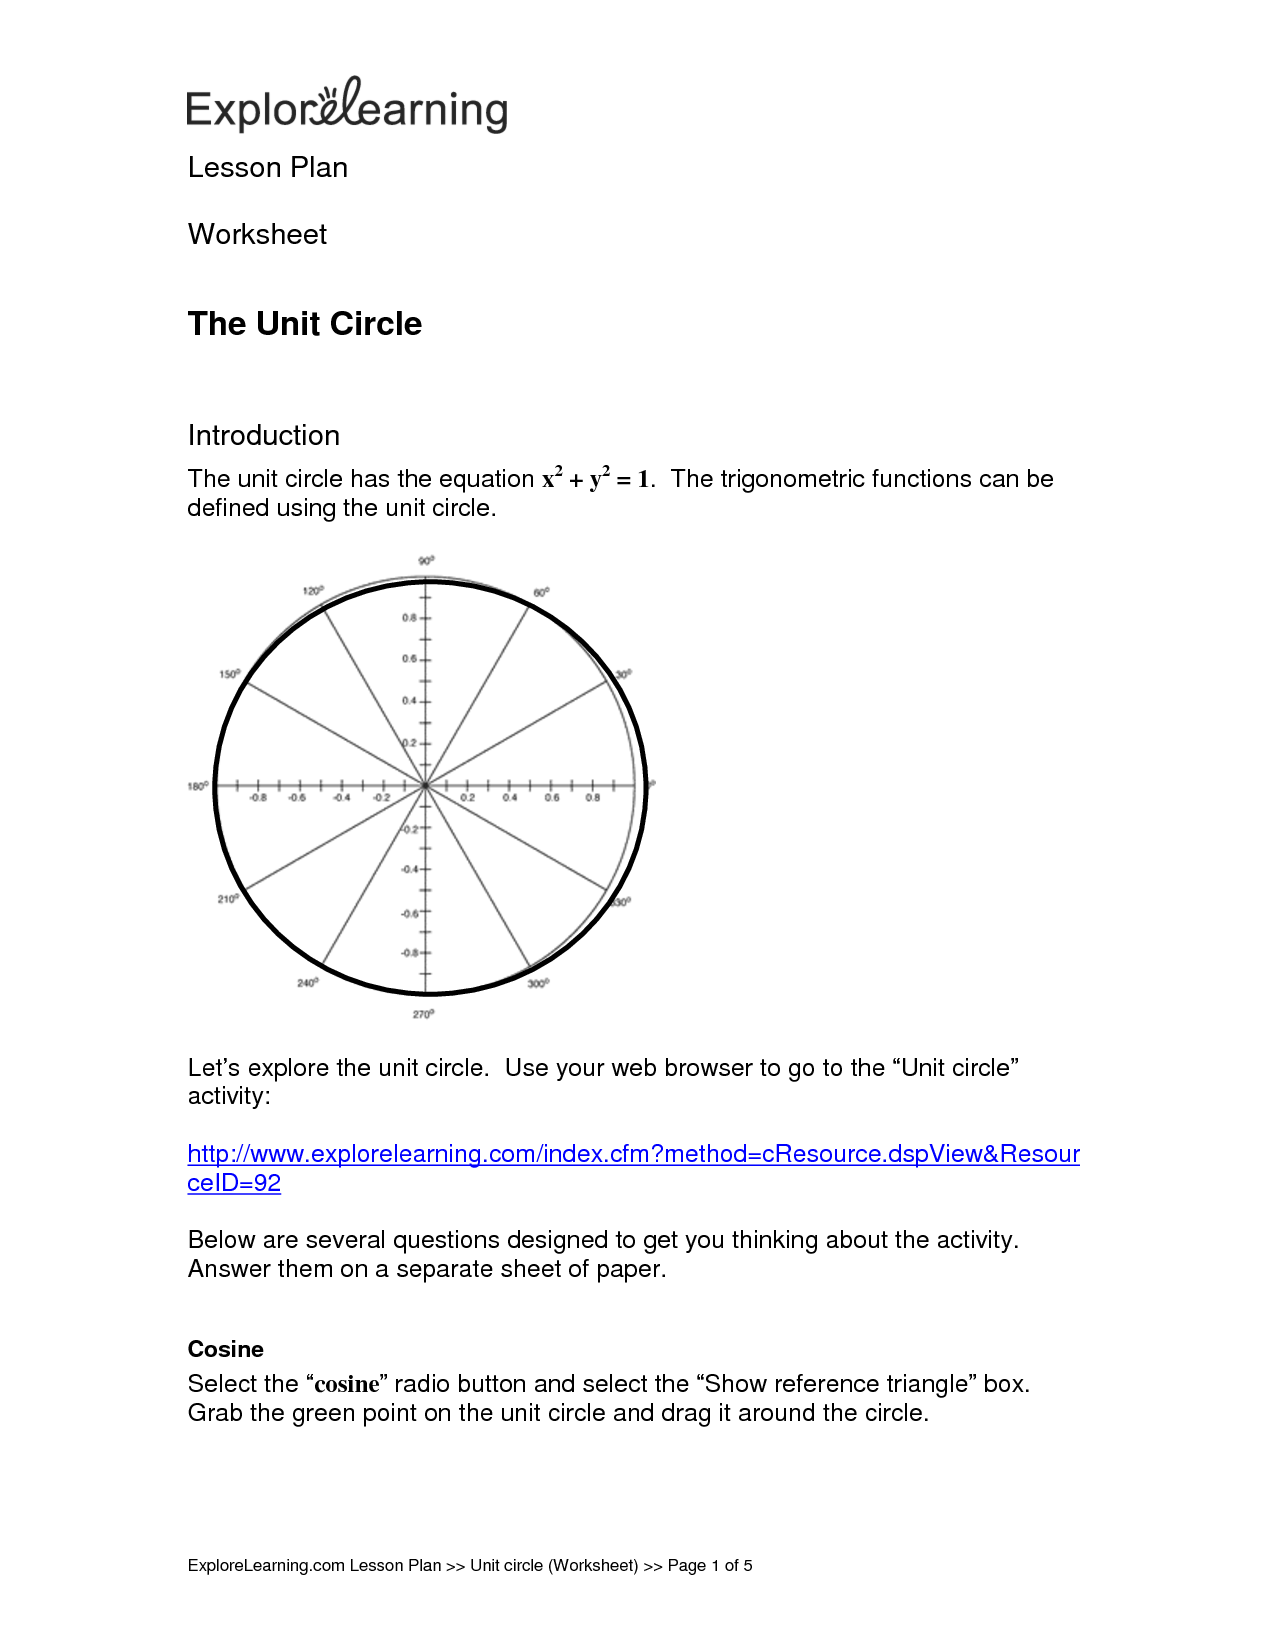 Unit Circle Worksheet Key